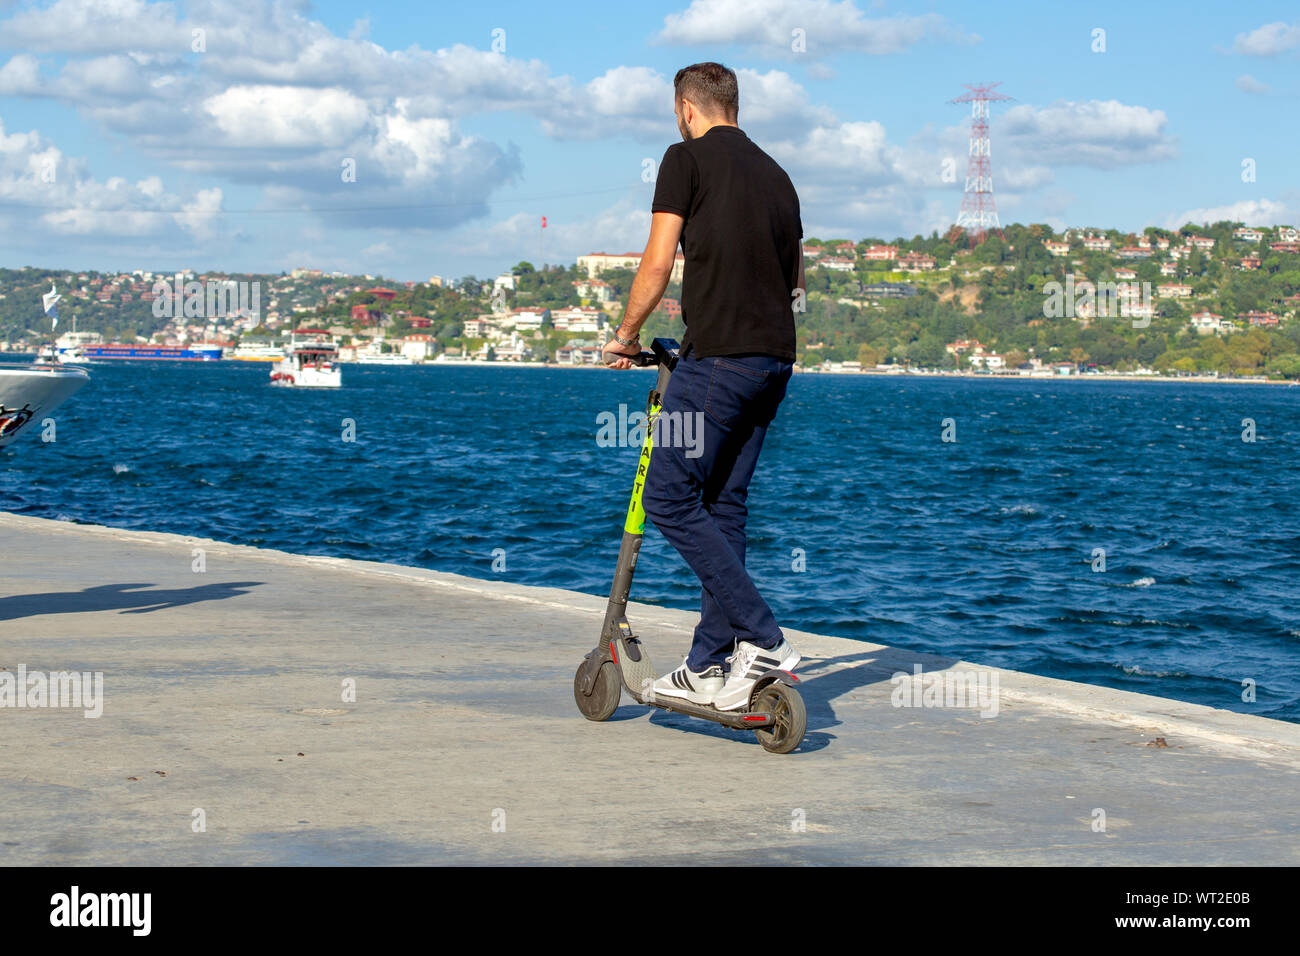 Young man riding Marti Tech, scooter rental service, rented electric scooter on the seaside. Bosphorus view with clouds in the background. Stock Photo